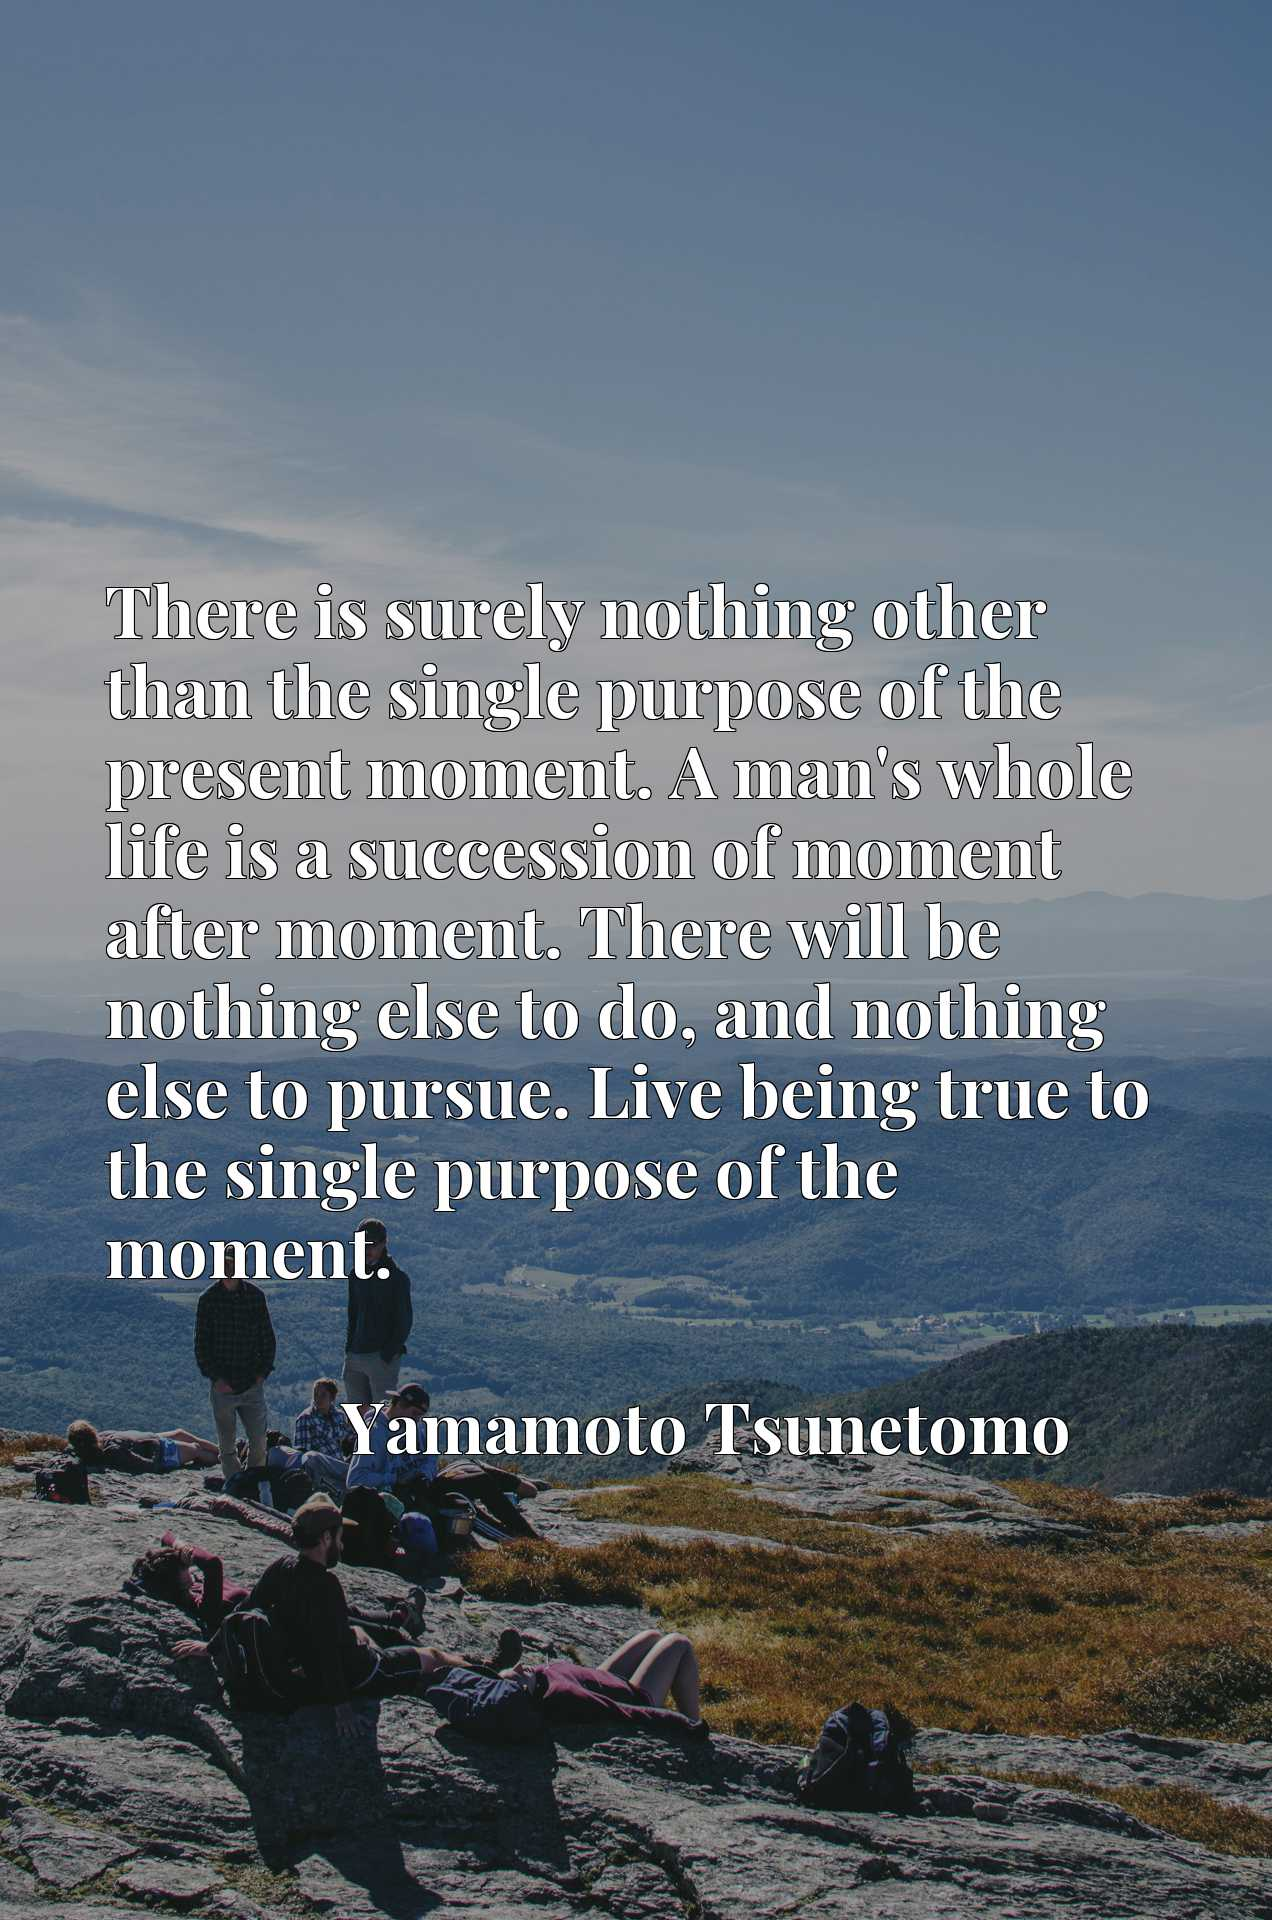 There is surely nothing other than the single purpose of the present moment. A man's whole life is a succession of moment after moment. There will be nothing else to do, and nothing else to pursue. Live being true to the single purpose of the moment.